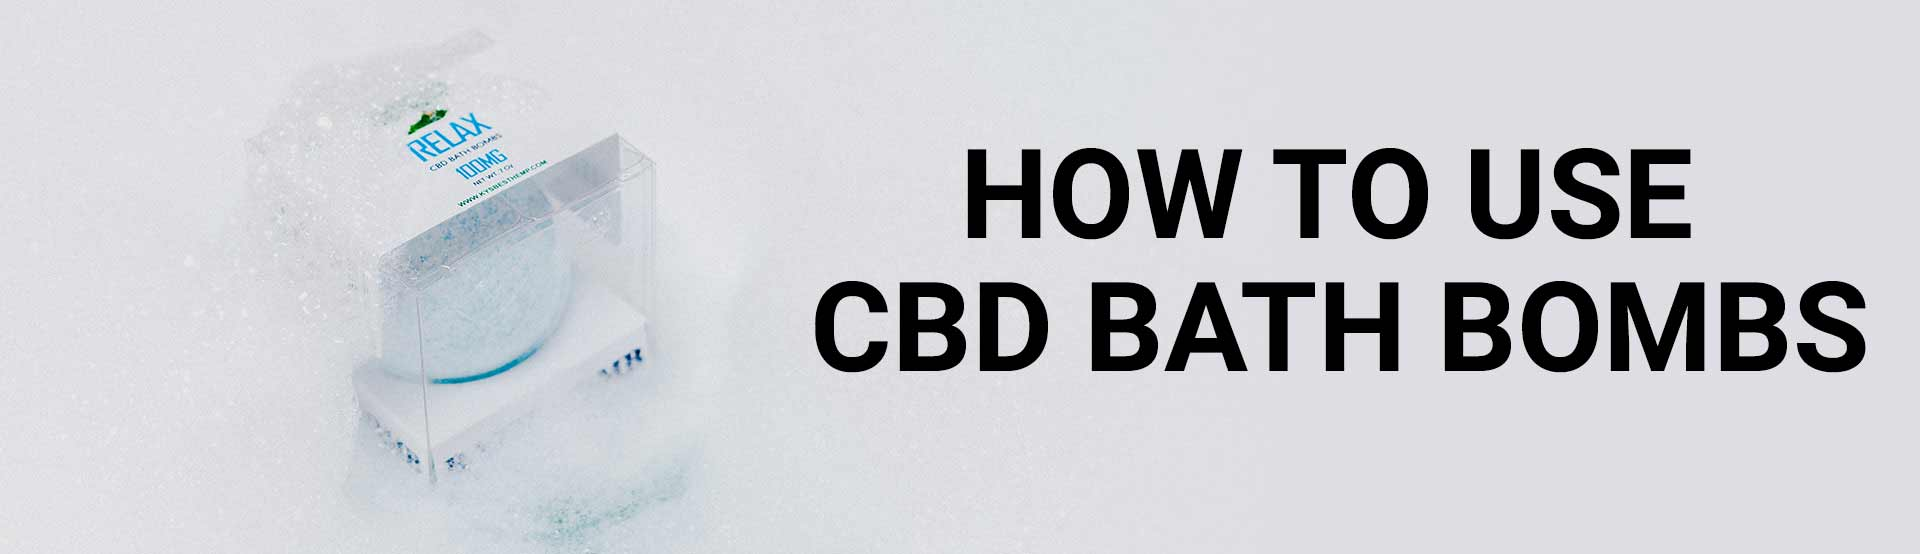 How to use CBD bath Bombs - Image of bath bomb in tub